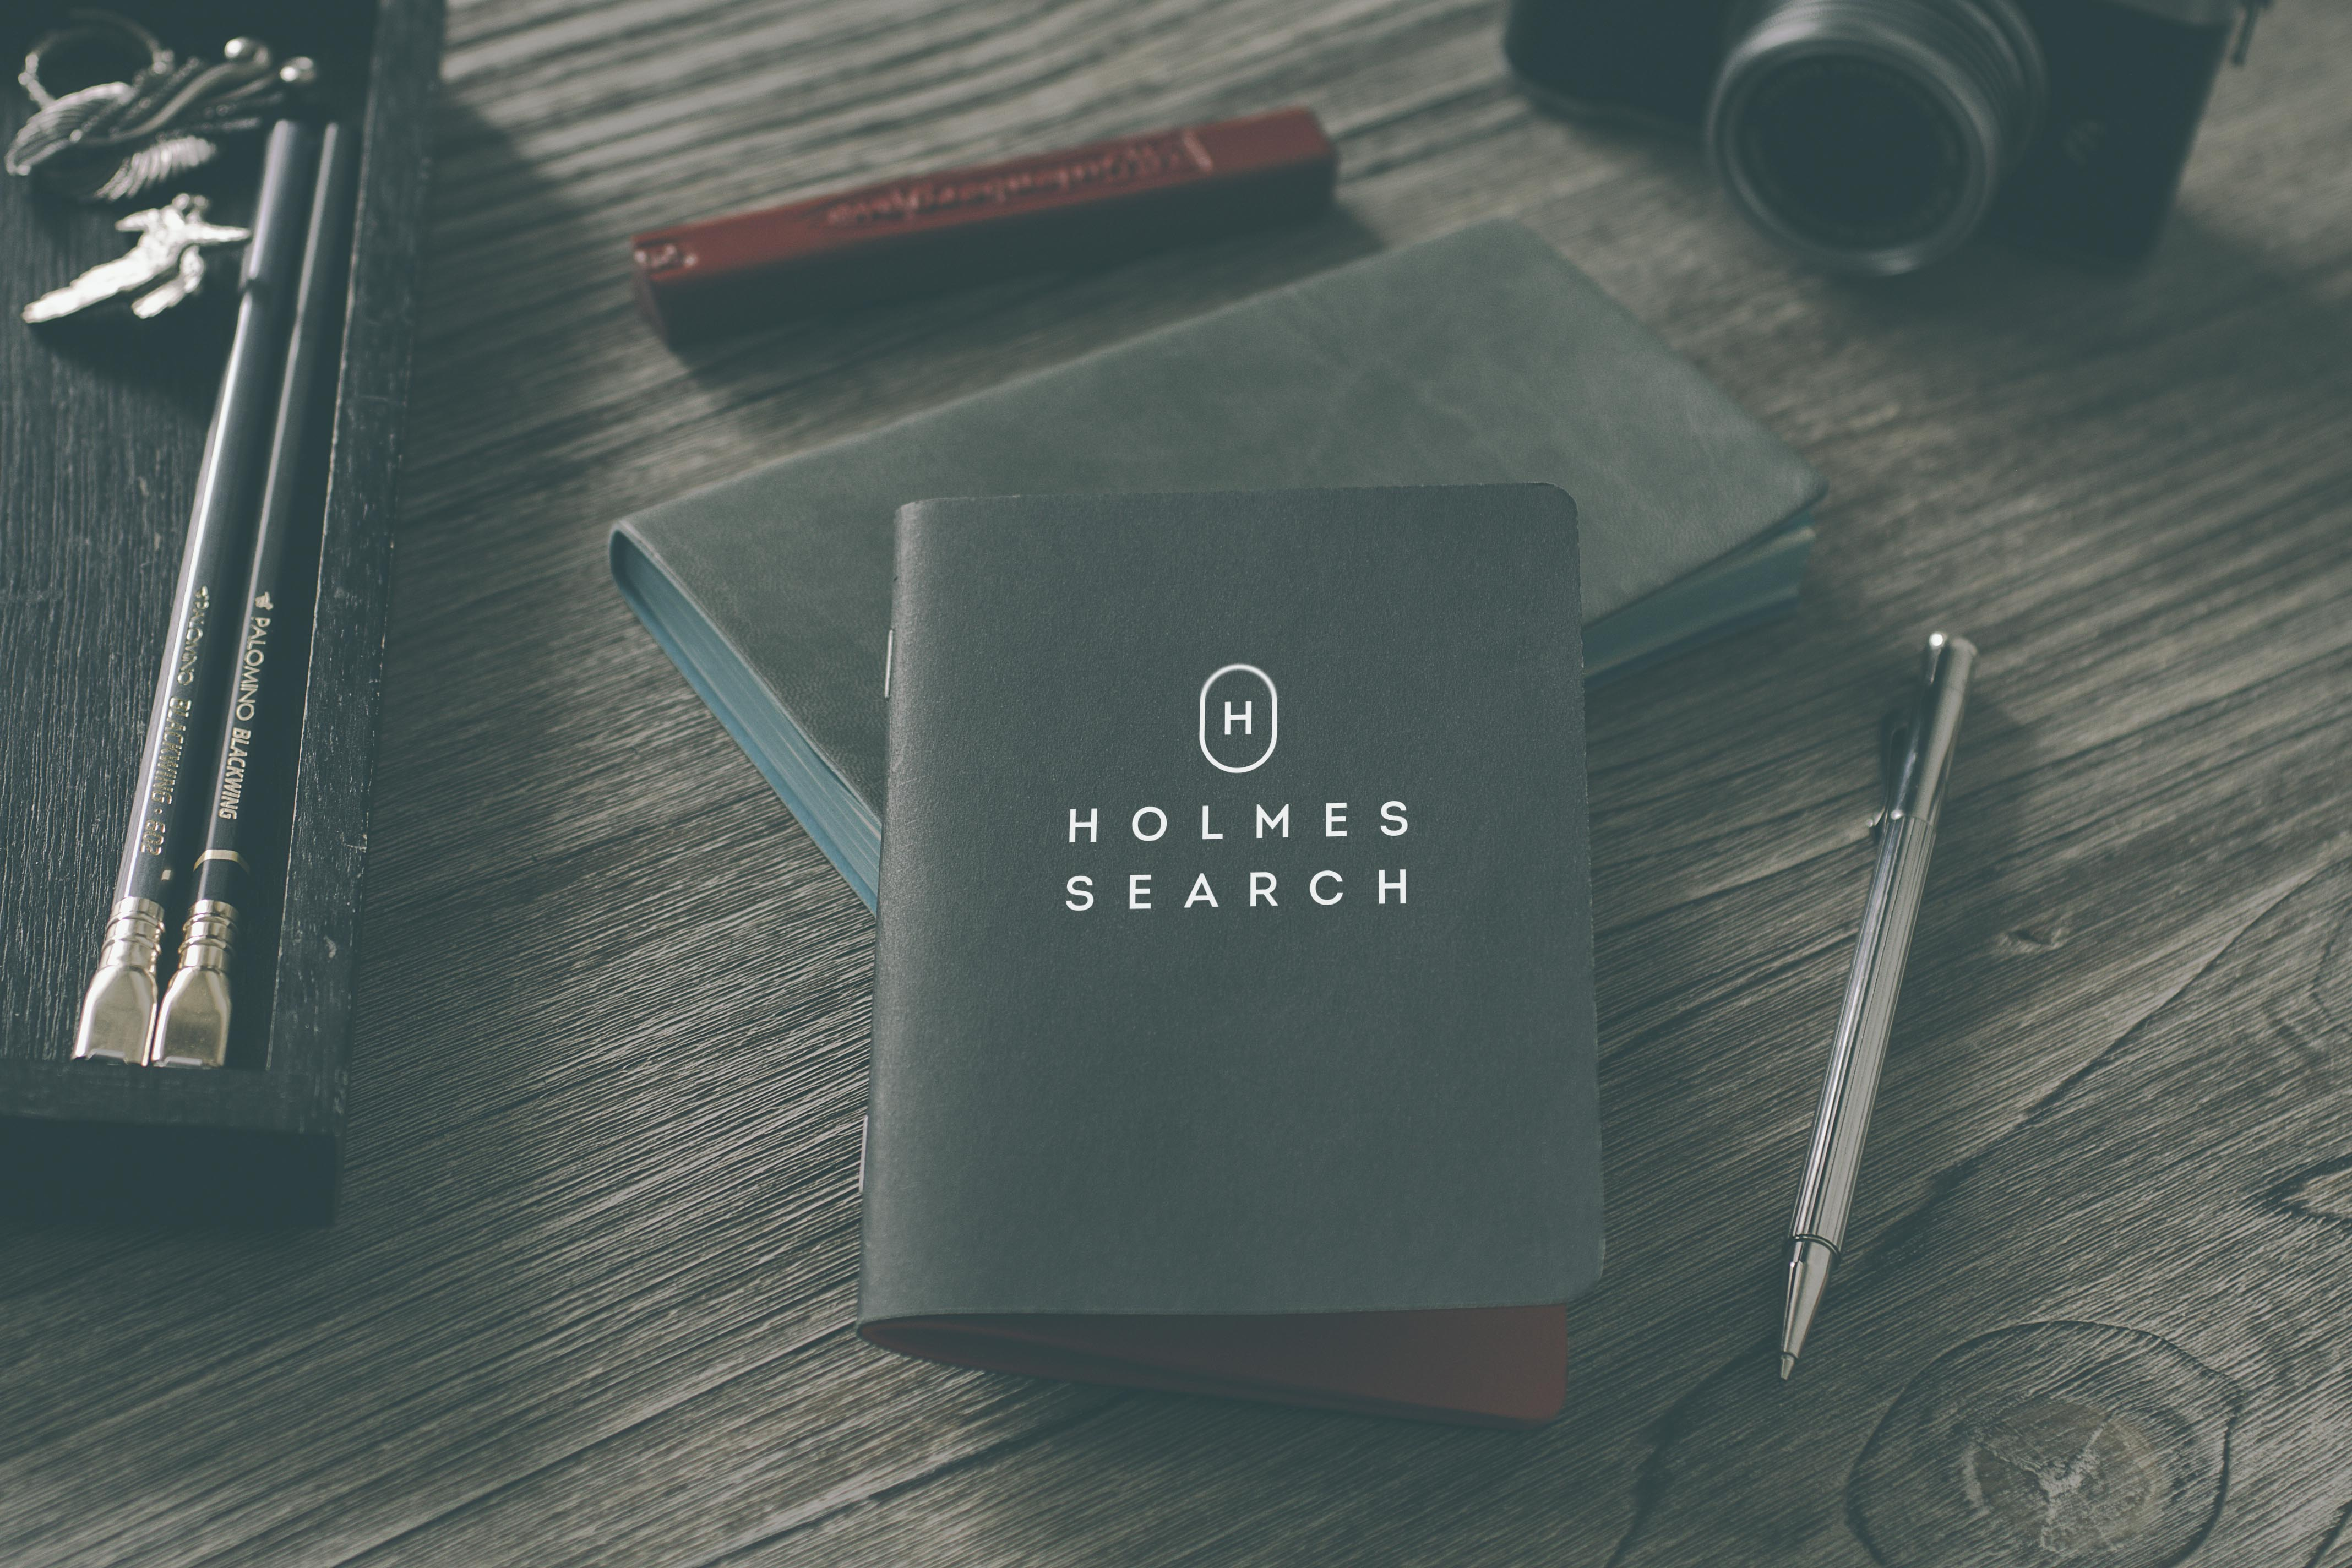 Holmes Search brand identity by Ditto Brand Stylists